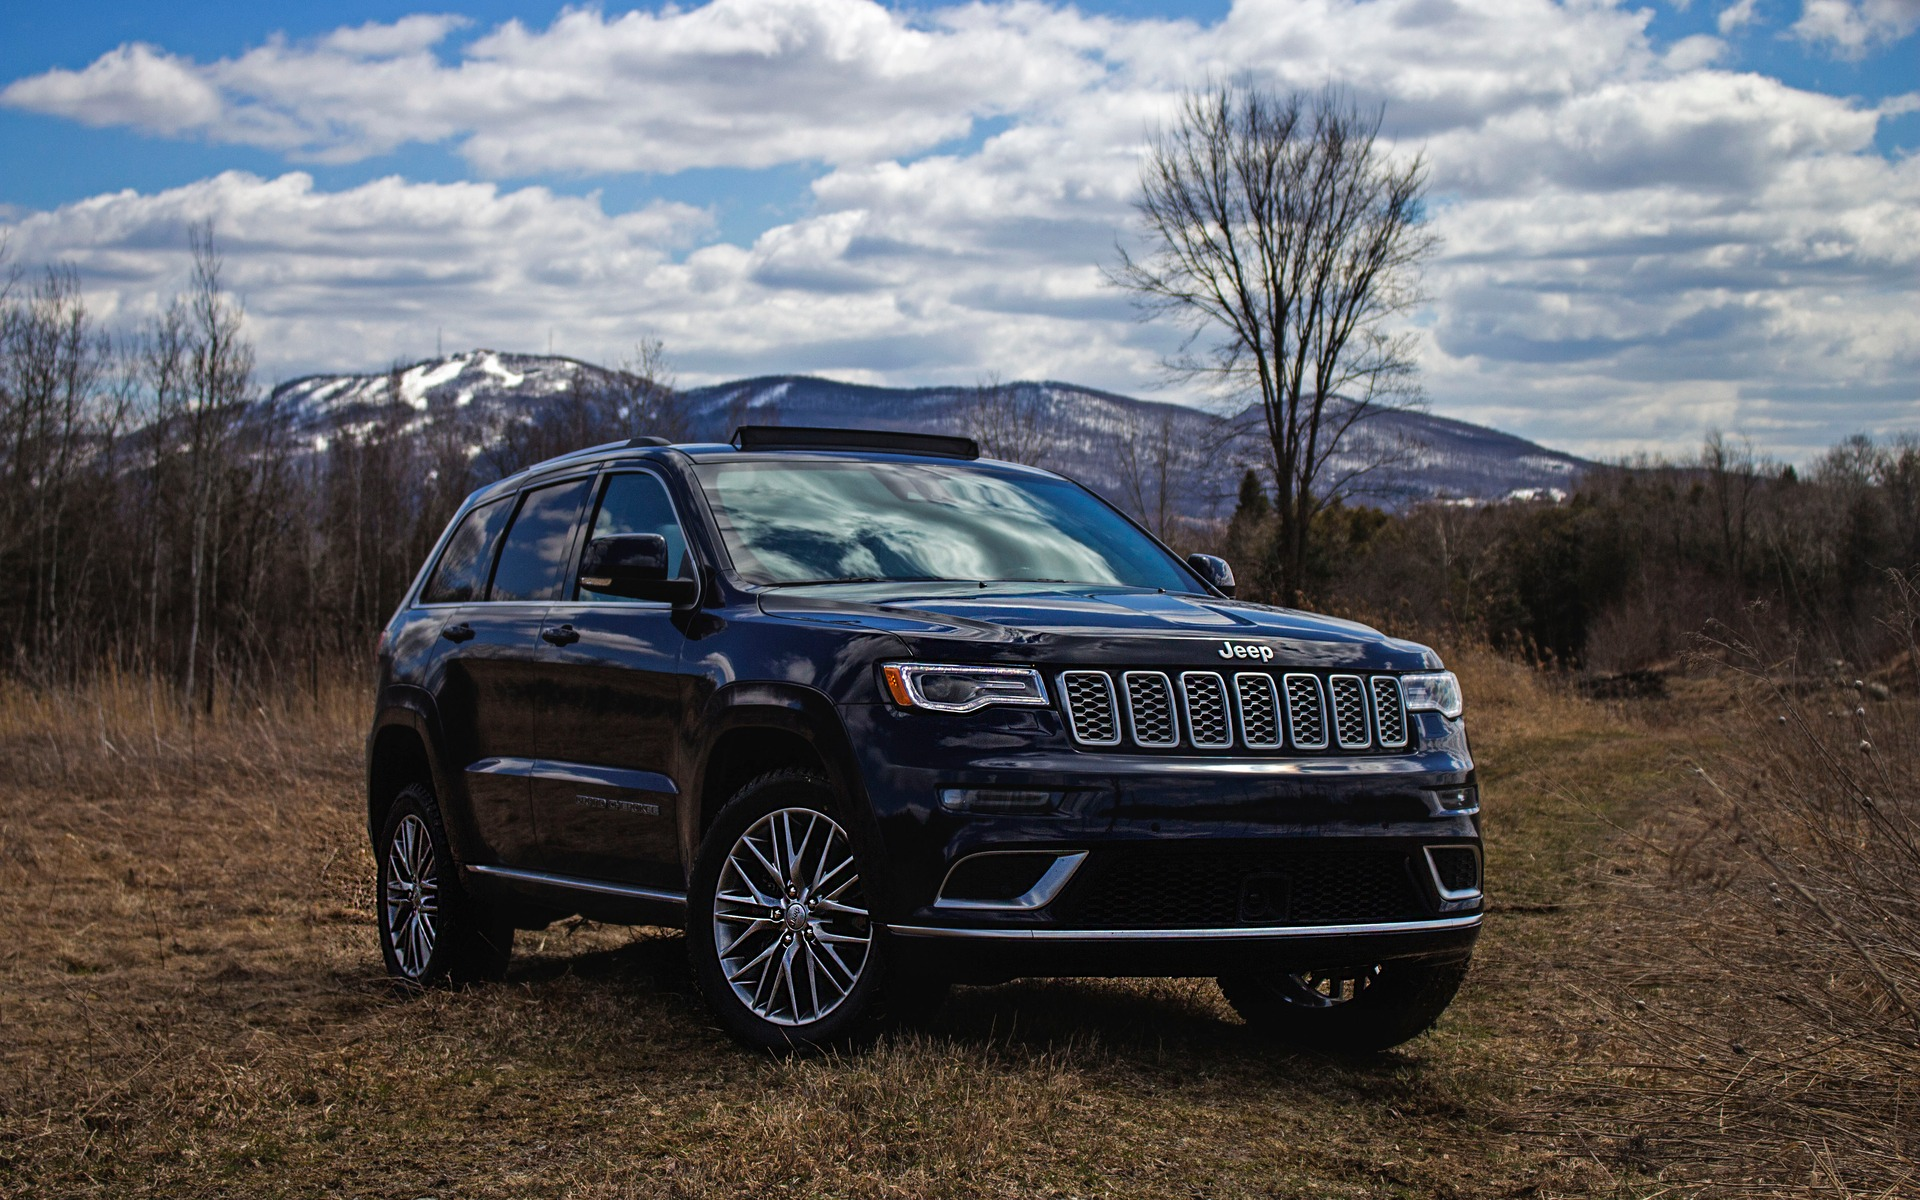 2018 jeep grand cherokee summit american character meets. Black Bedroom Furniture Sets. Home Design Ideas